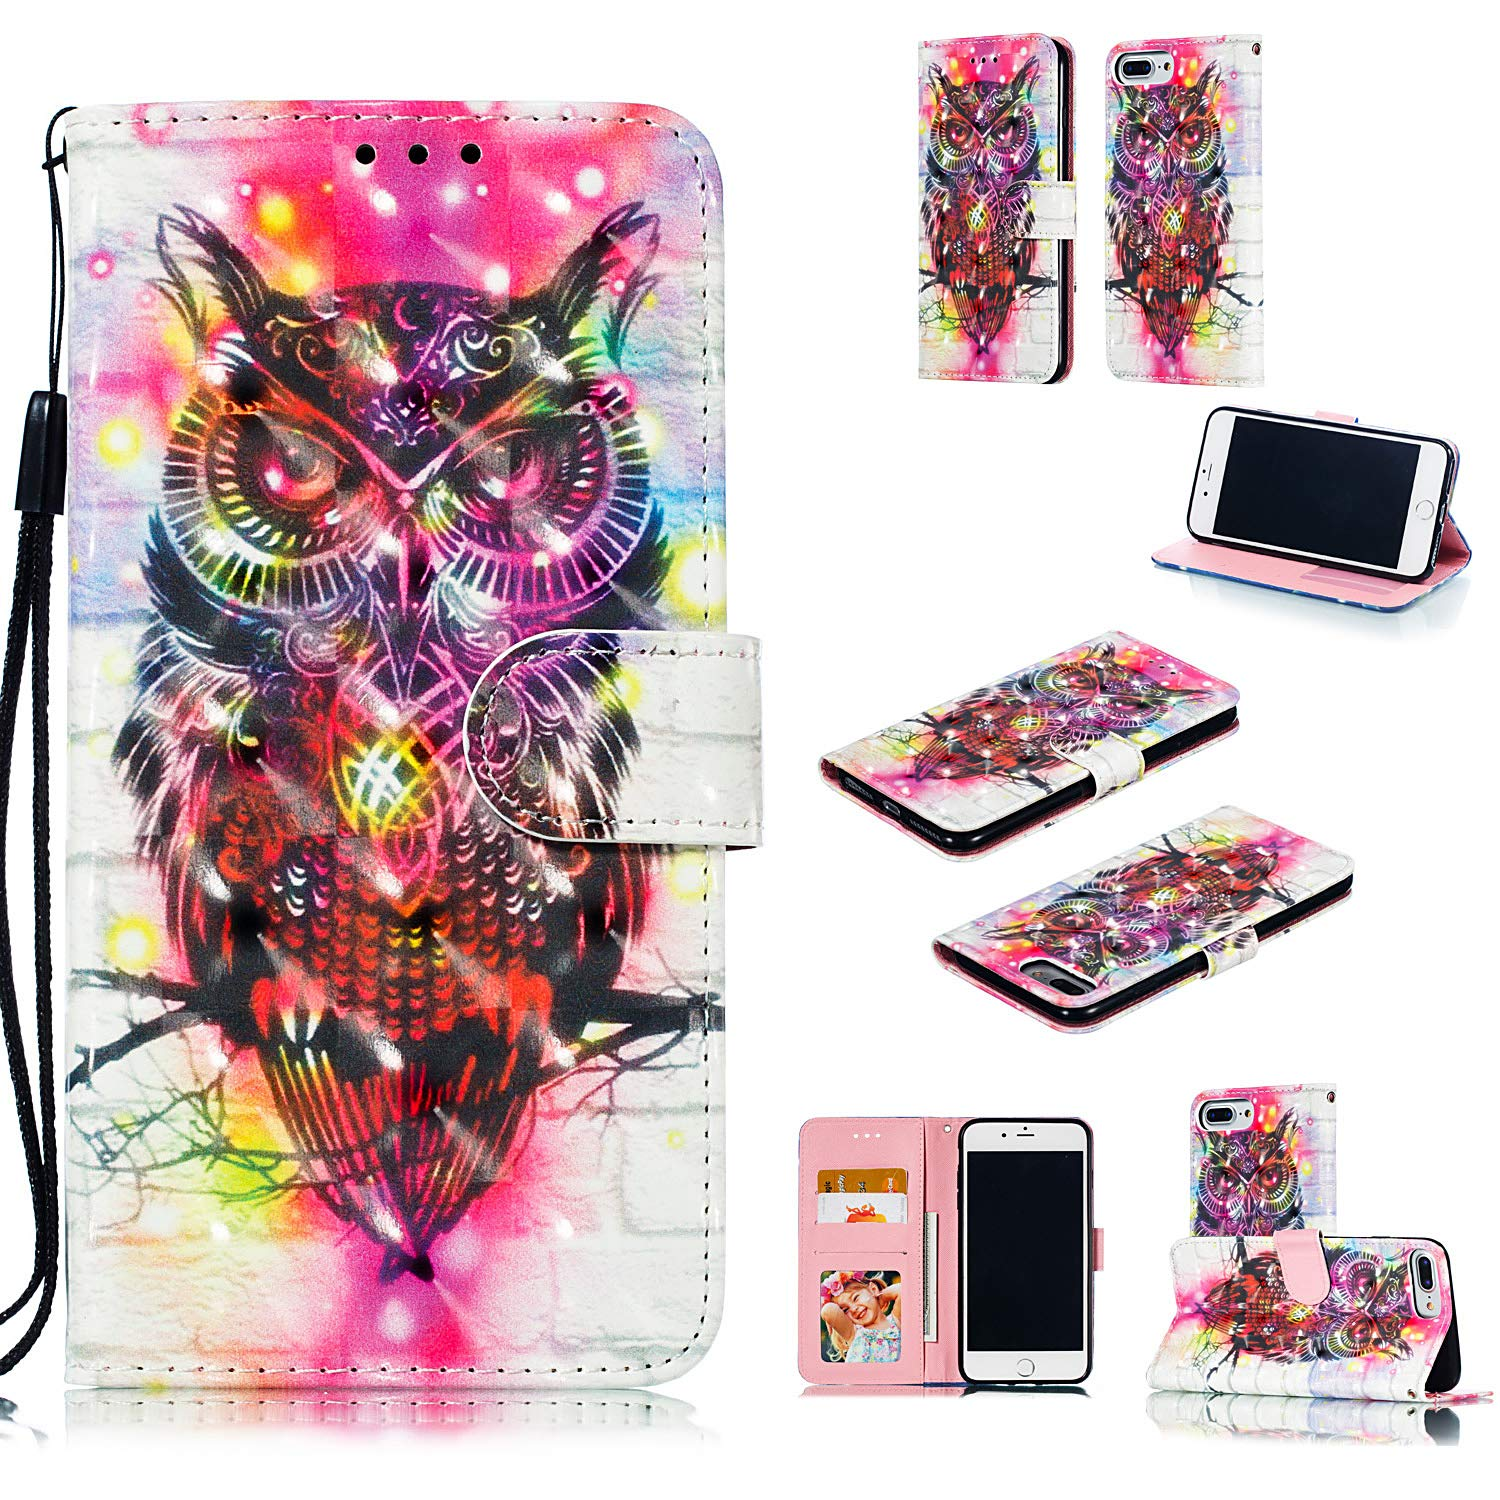 NOMO iPhone 8 Plus Case,iPhone 7 Plus Wallet Case,iPhone 6S Plus Case,iPhone 6 Plus,Folio Flip PU Leather Pattern Case Card Slots Kickstand Case for iPhone 7 Plus/8 Plus/6 Plus/6S Plus,Colorful Owl